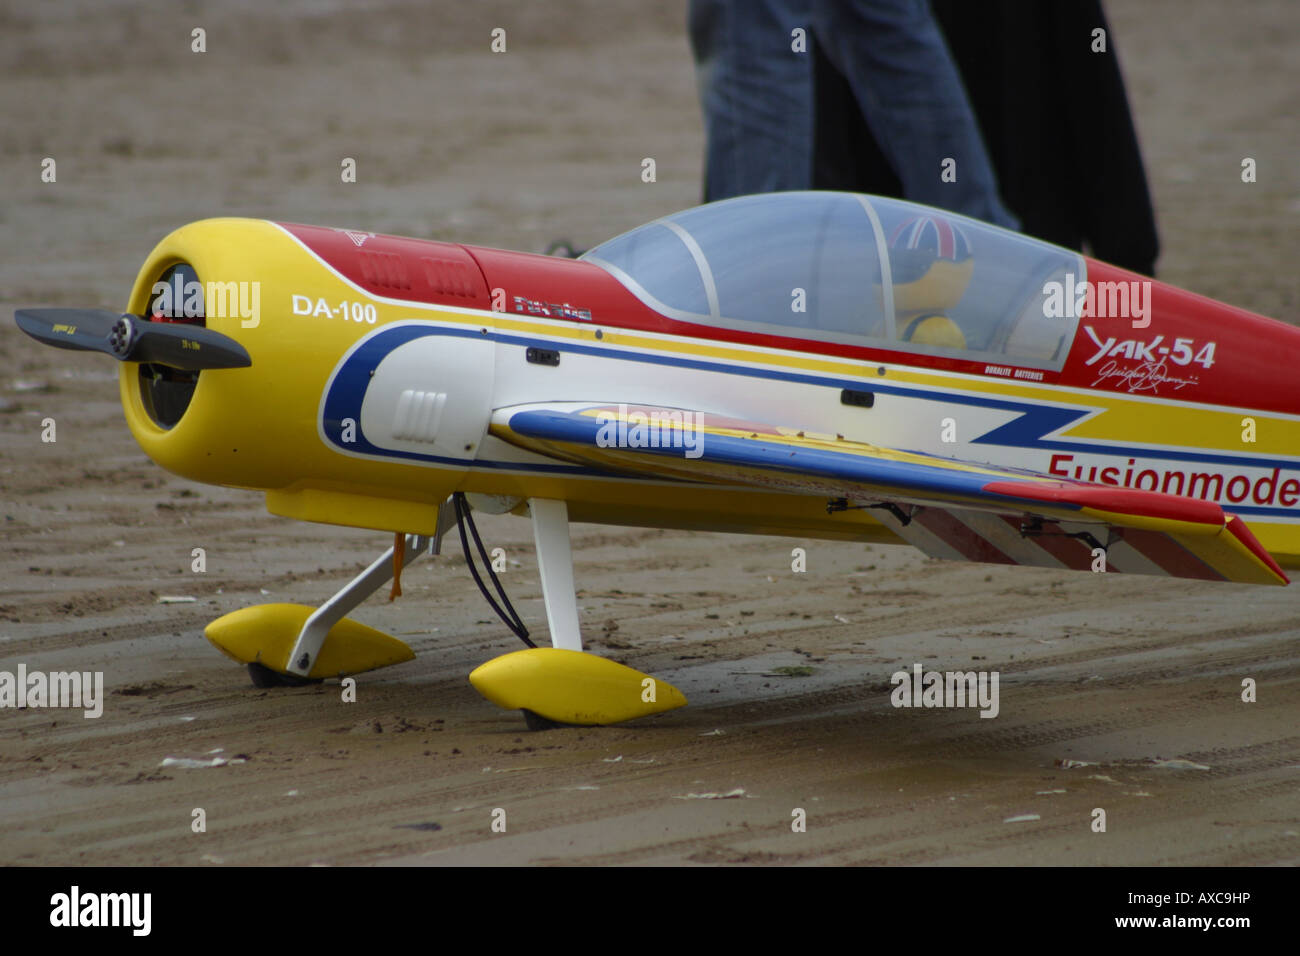 prop engine engined model monoplane plane airplane southport air show  merseyside - Stock Image